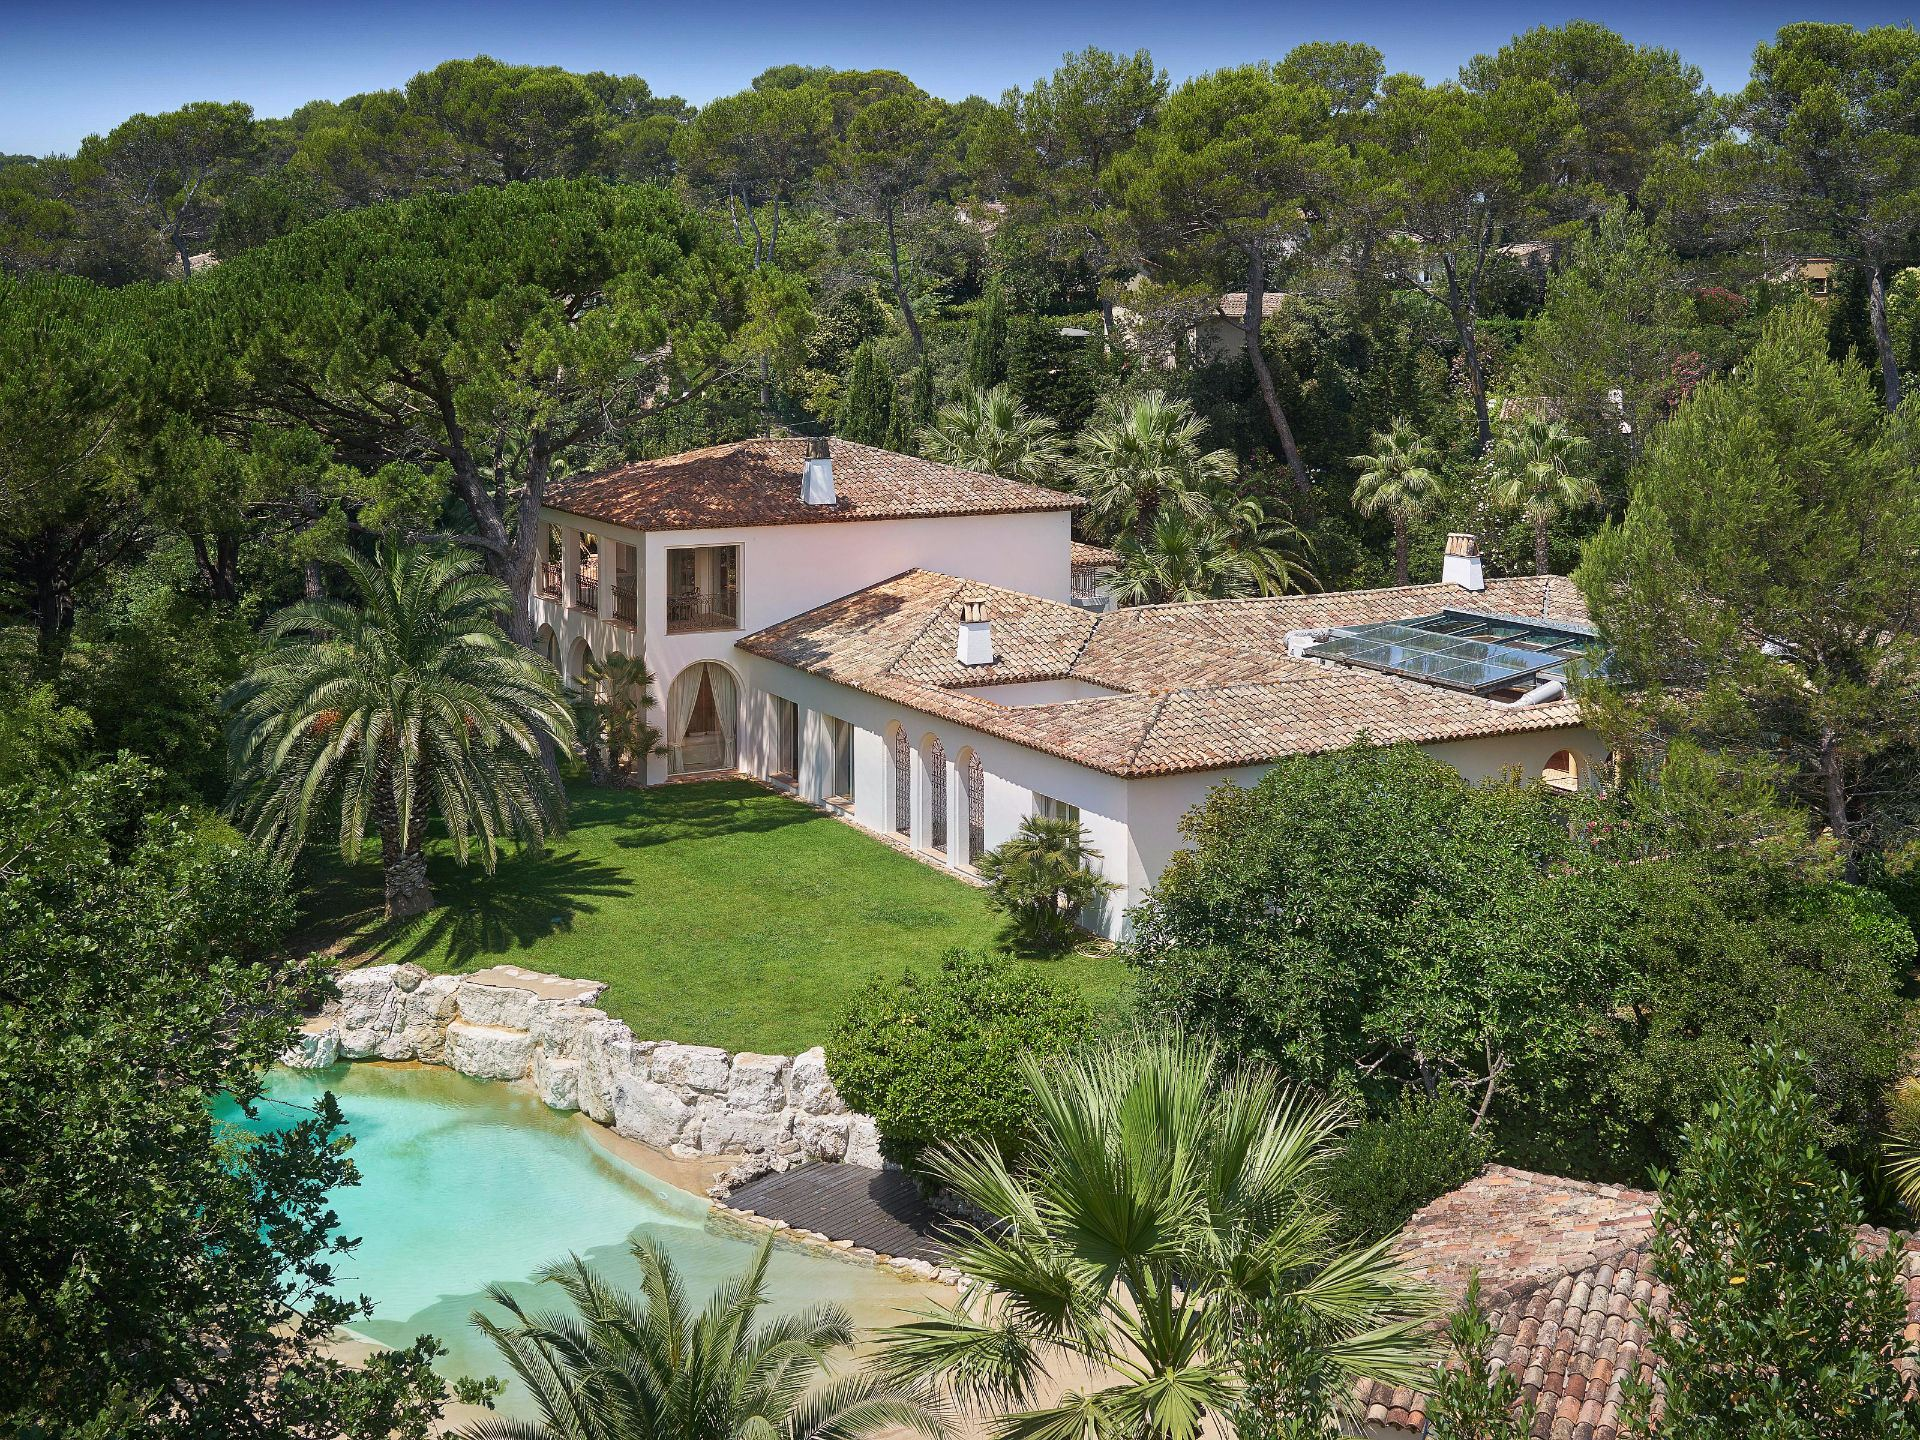 단독 가정 주택 용 매매 에 Villa of Hispanic - Moorish architecture on the golf course of Cannes Mougins Mougins, 프로벤스 앞ㄹ프스 코테 D'Azur, 06250 프랑스